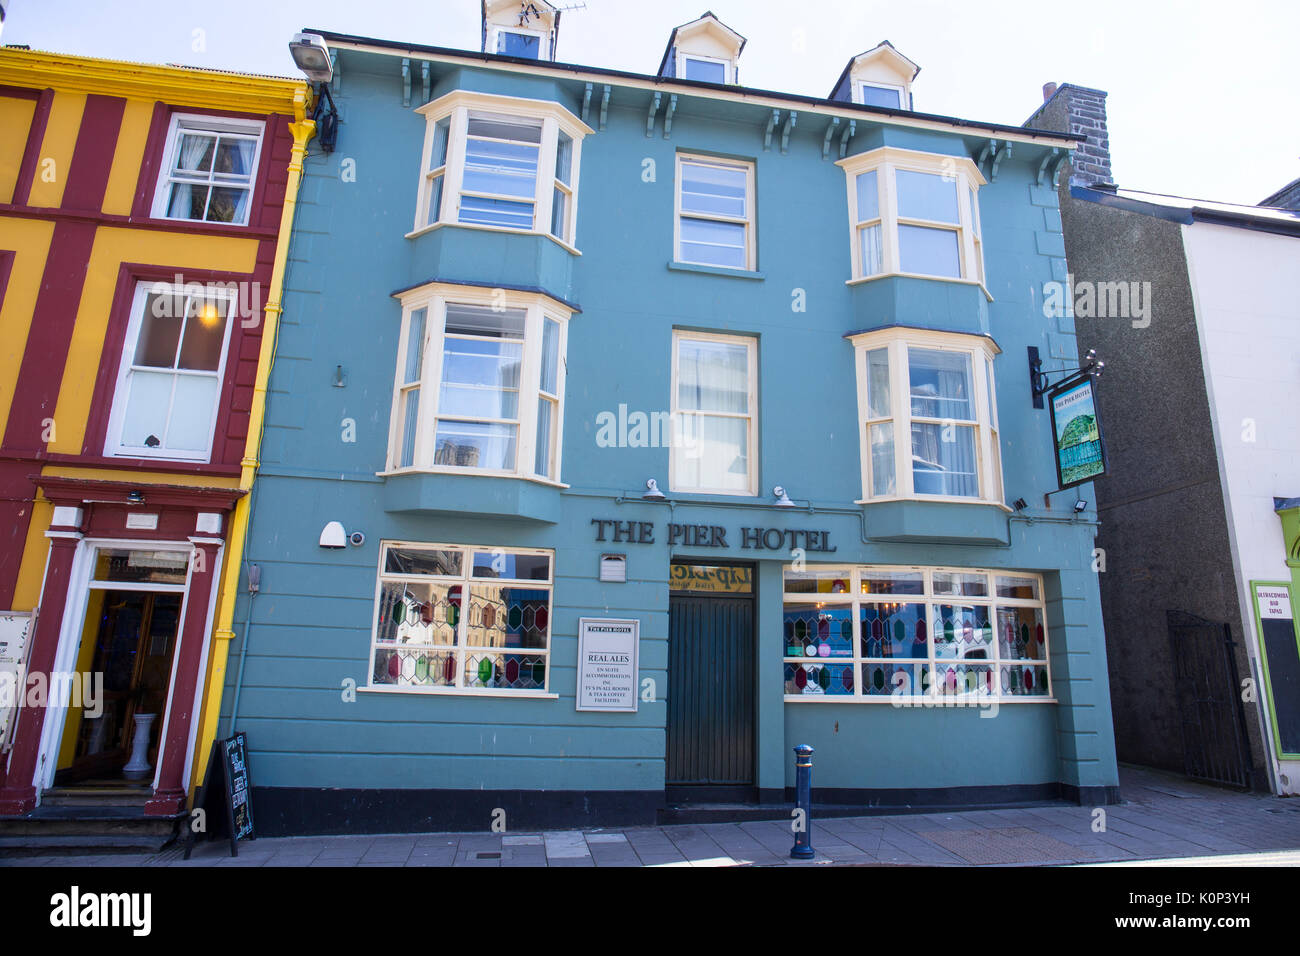 The Pier Hotel in Aberystwyth Ceredigion Wales UK - Stock Image